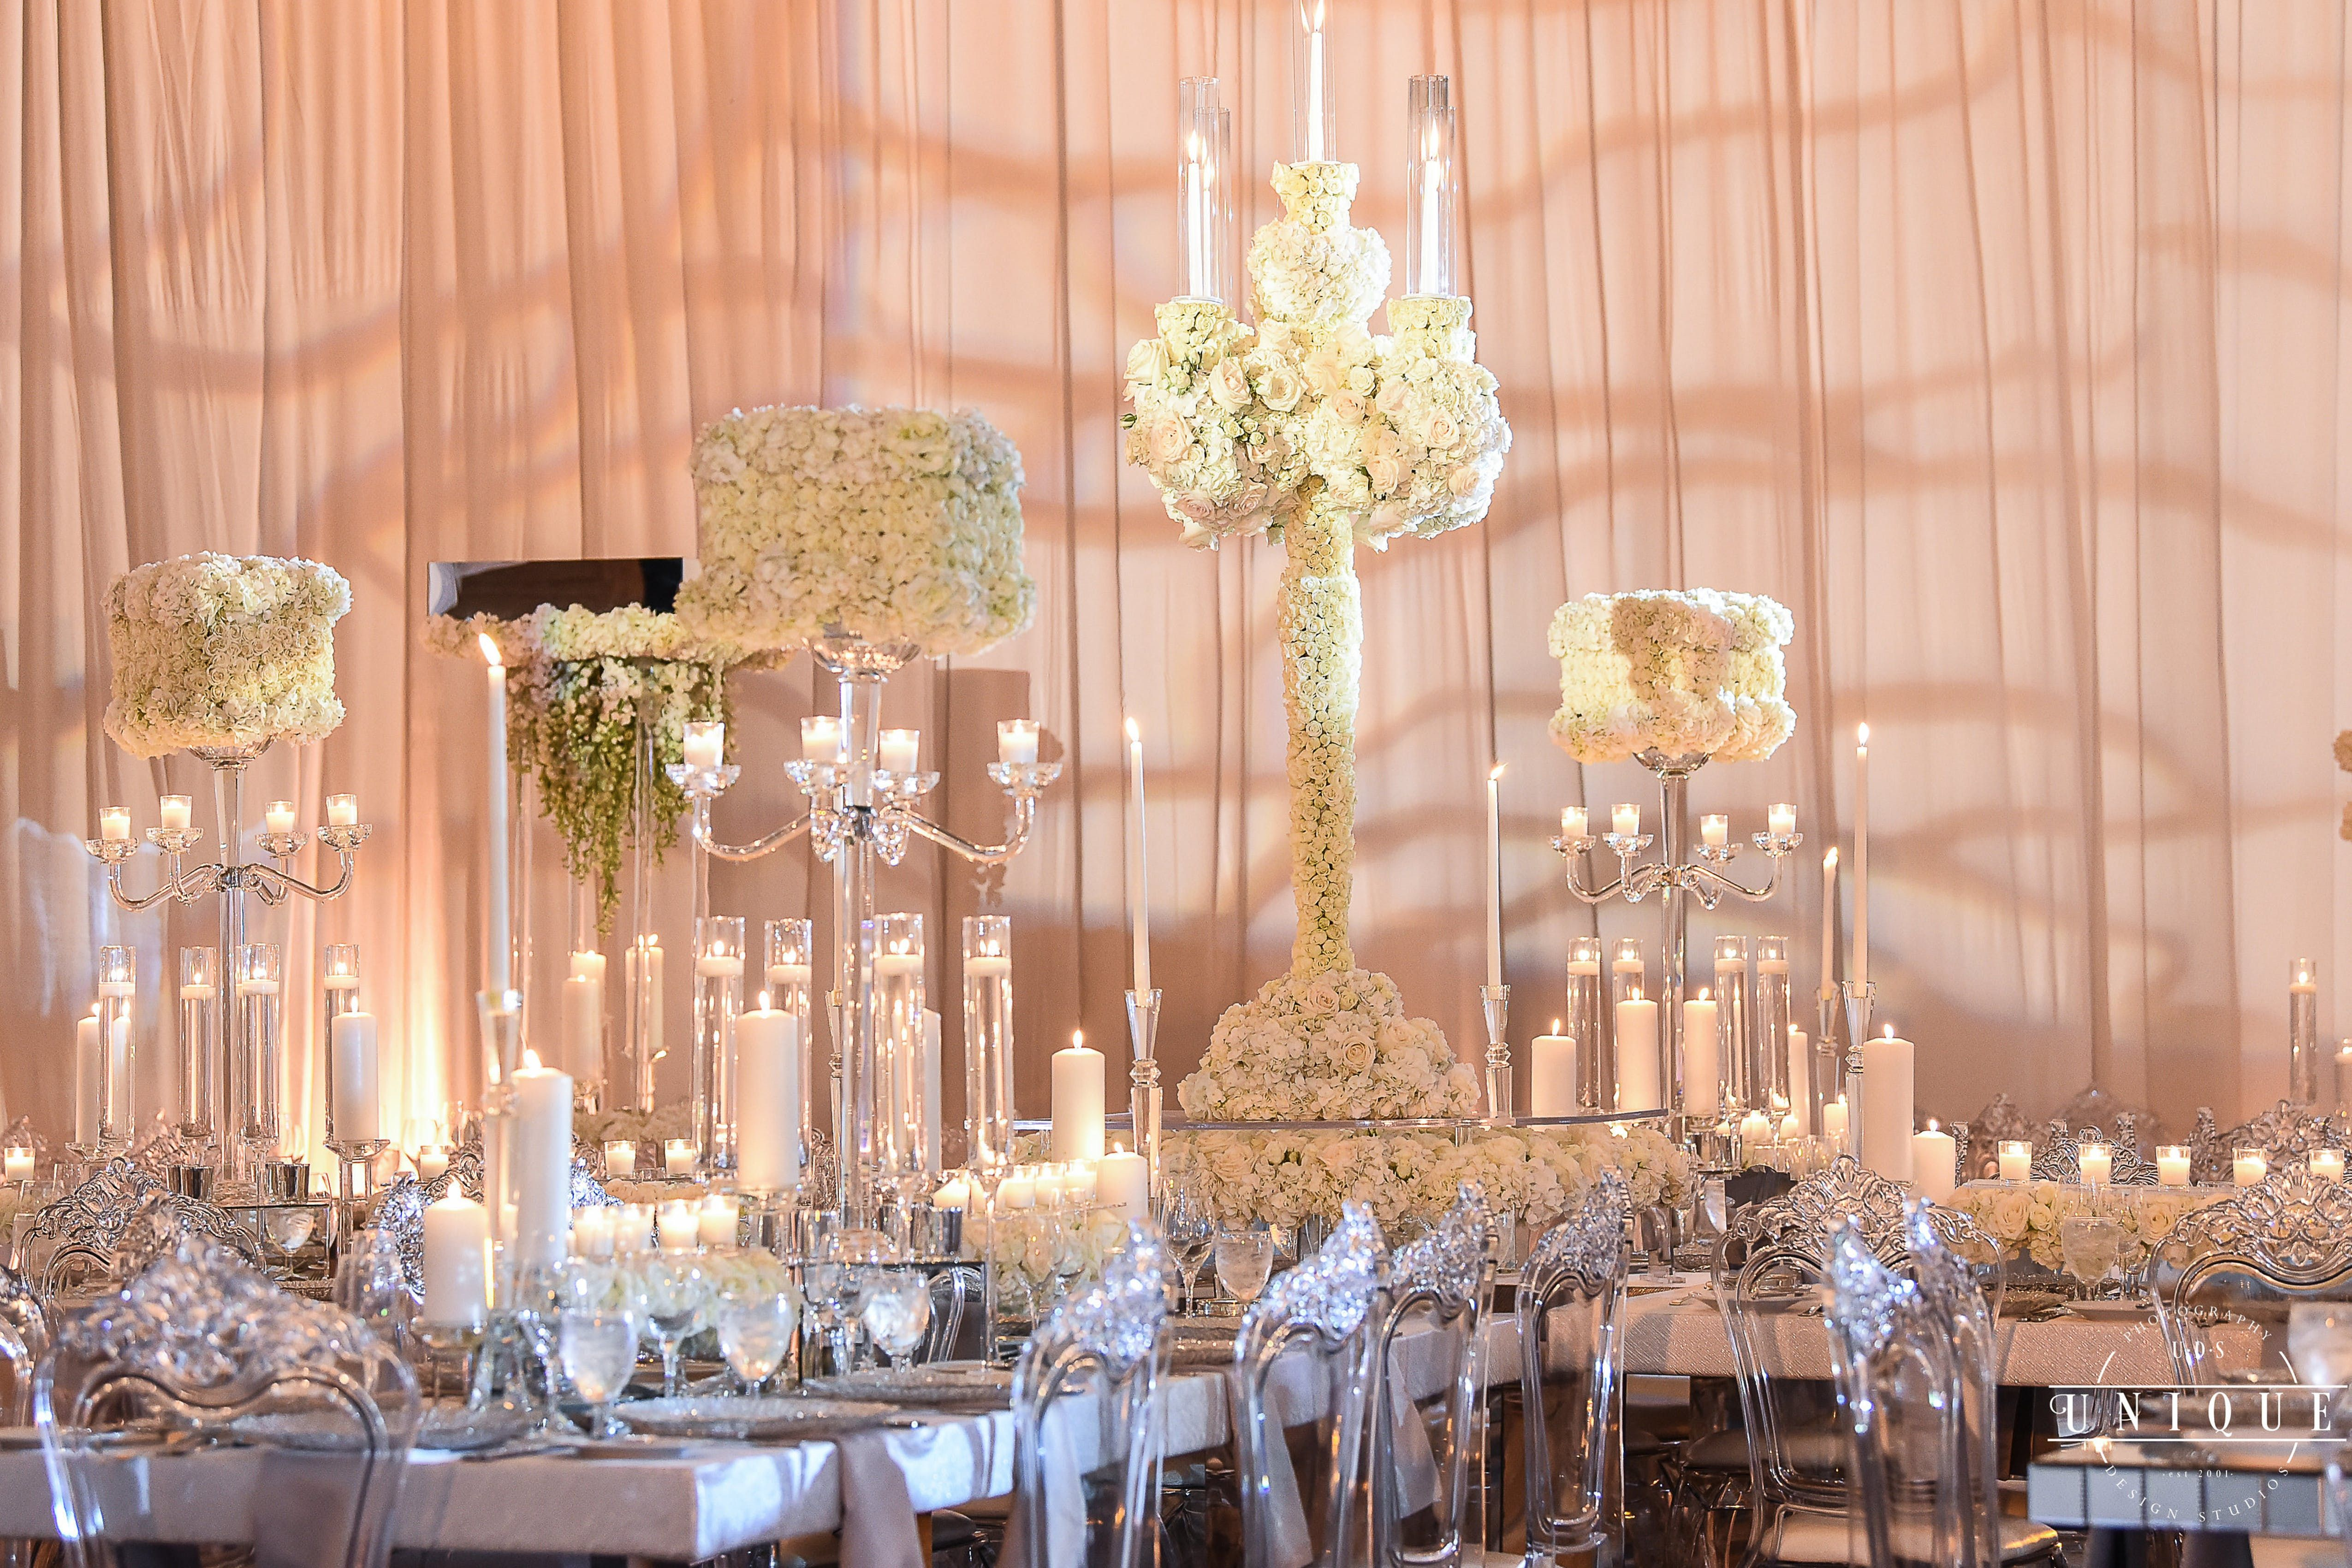 White Pink And Green Dreamy Wedding Party Rentals And Decor By Gilded Group Decor Miami Event Design Miami Wedding Decorations Event Decor Floral Wedding